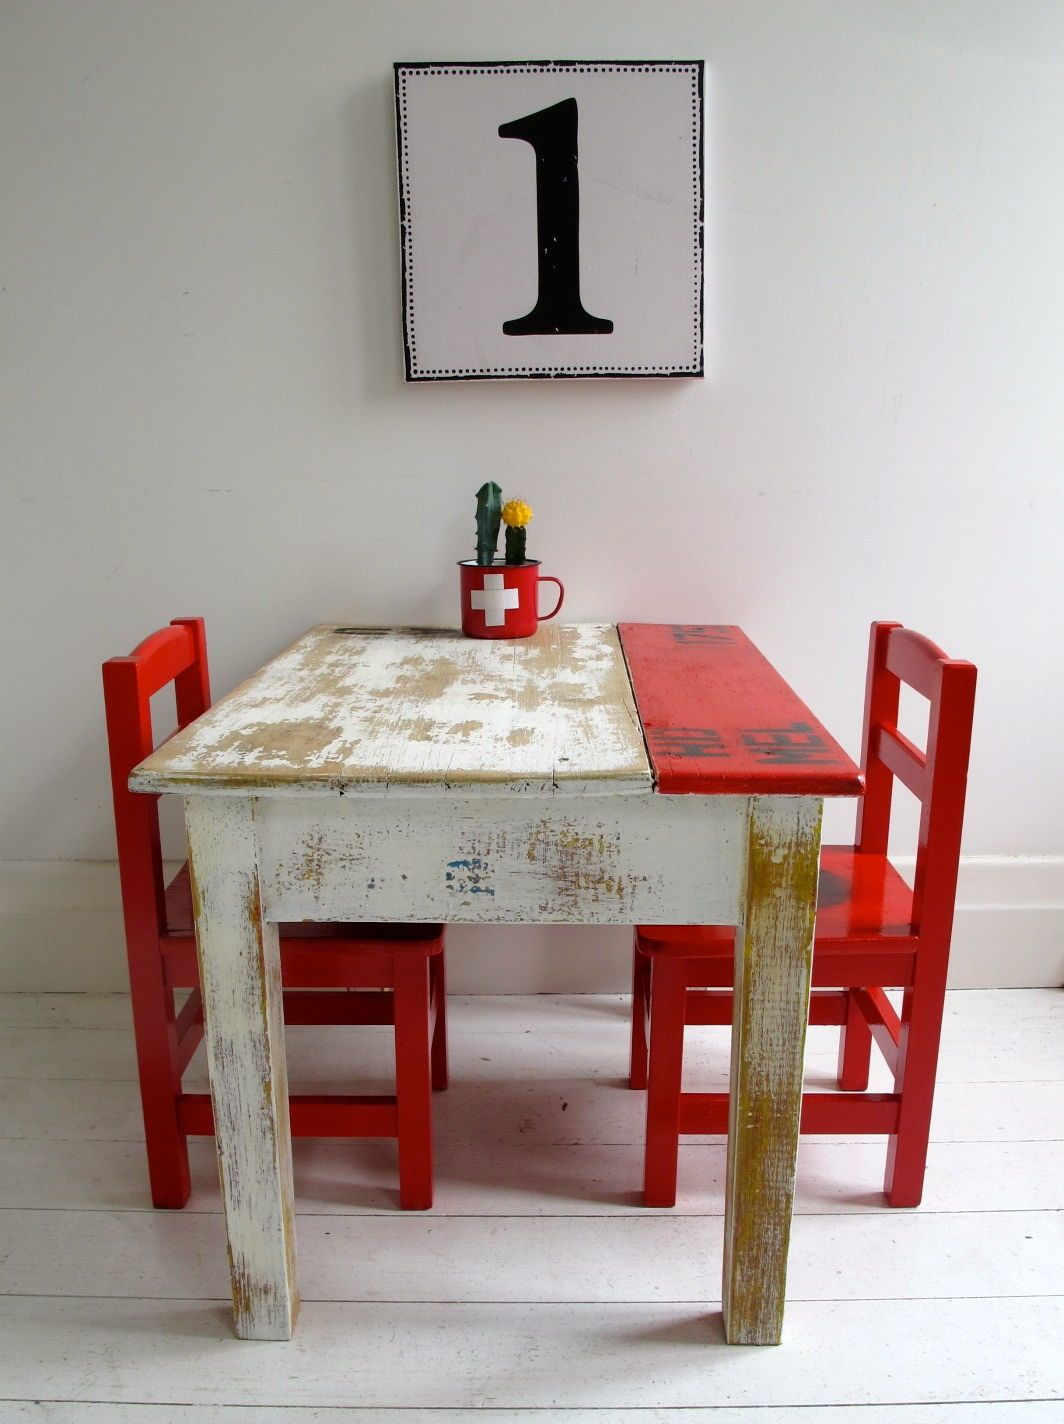 Fine Industrial Vintage Old Childrens Table And Chairs Kids Table Home Interior And Landscaping Ponolsignezvosmurscom